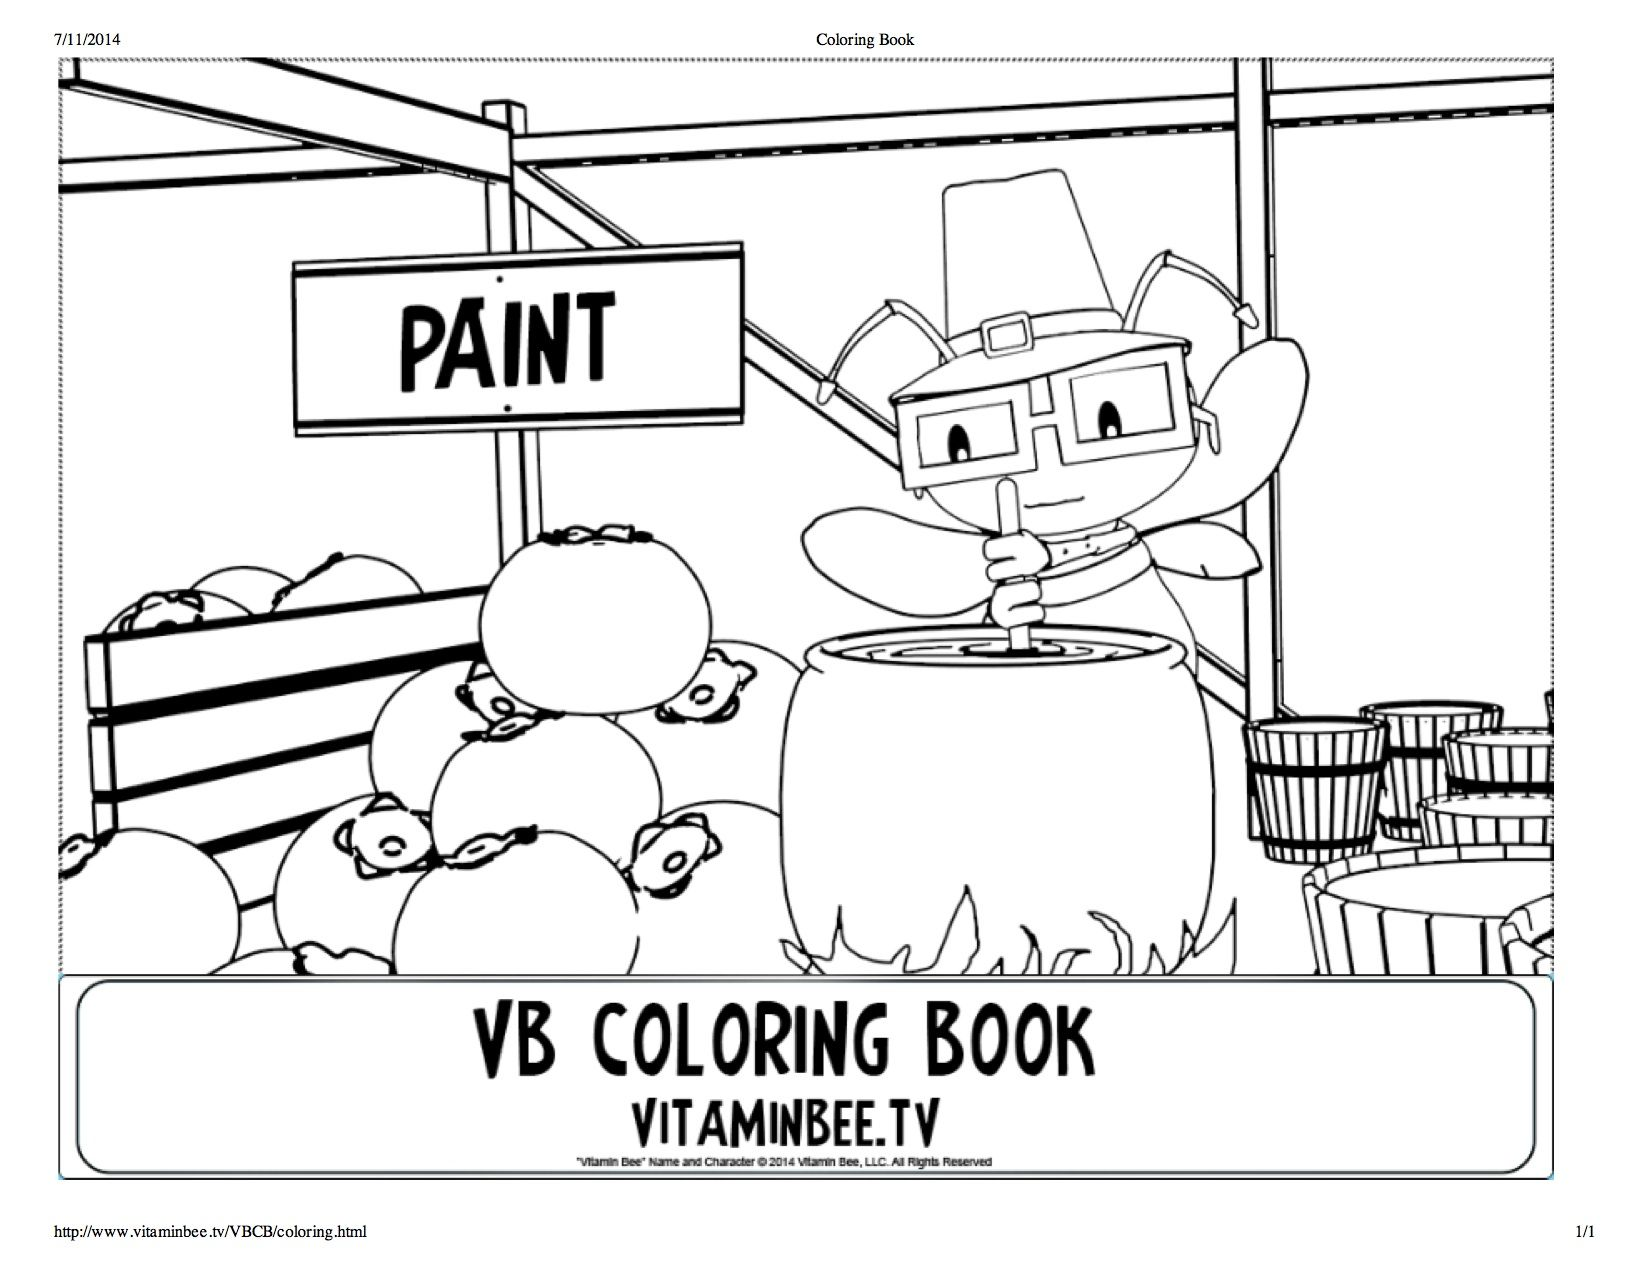 Vitamin Bee Is Making Grey Paint Just Like The Early